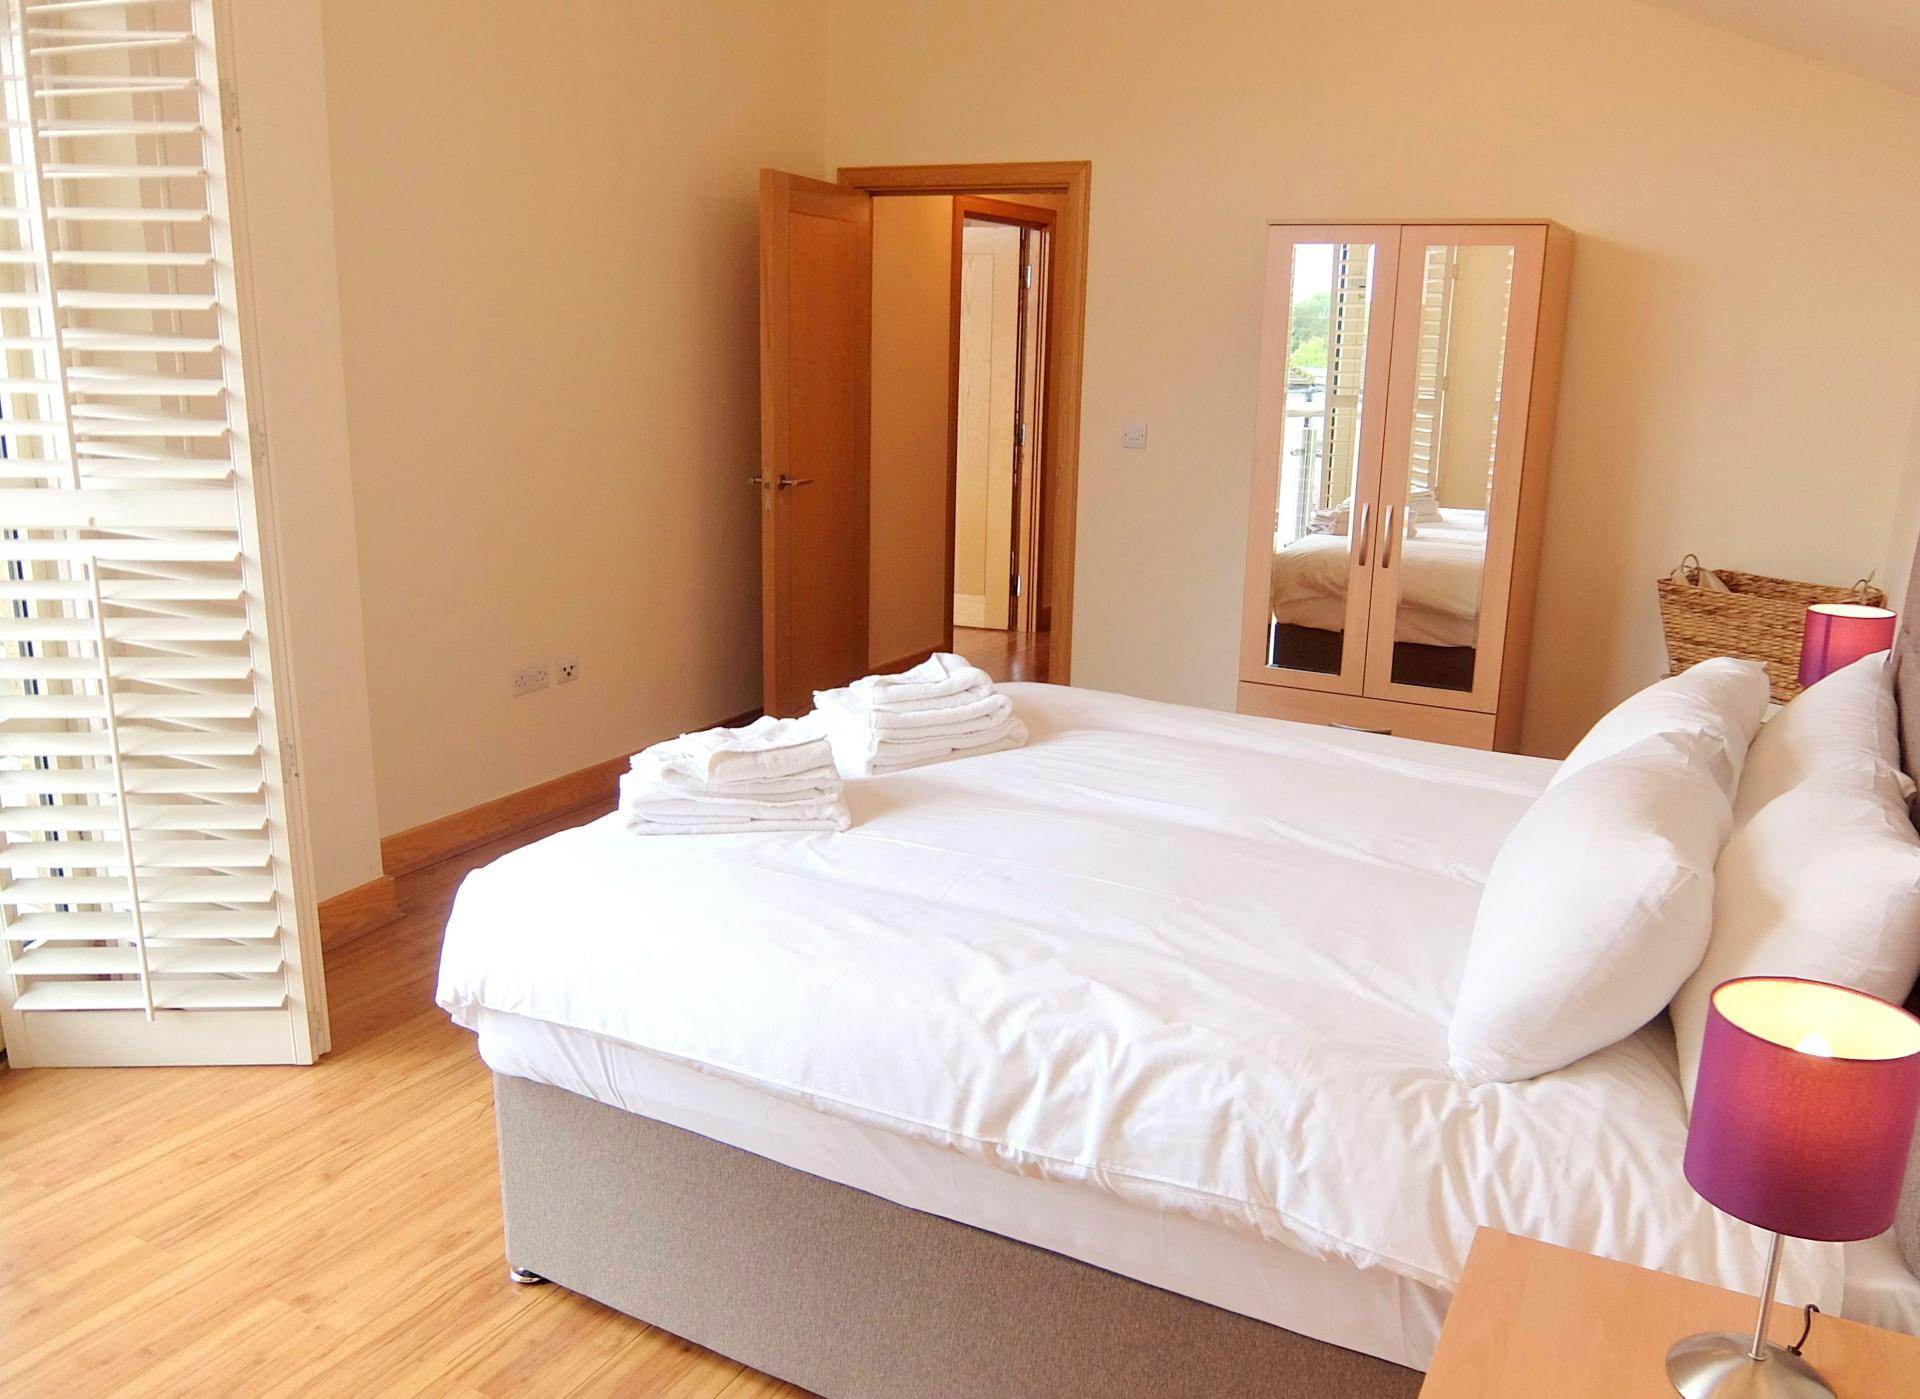 Bed at Hampton Court Serviced Apartments, Hampton Court, London - Citybase Apartments